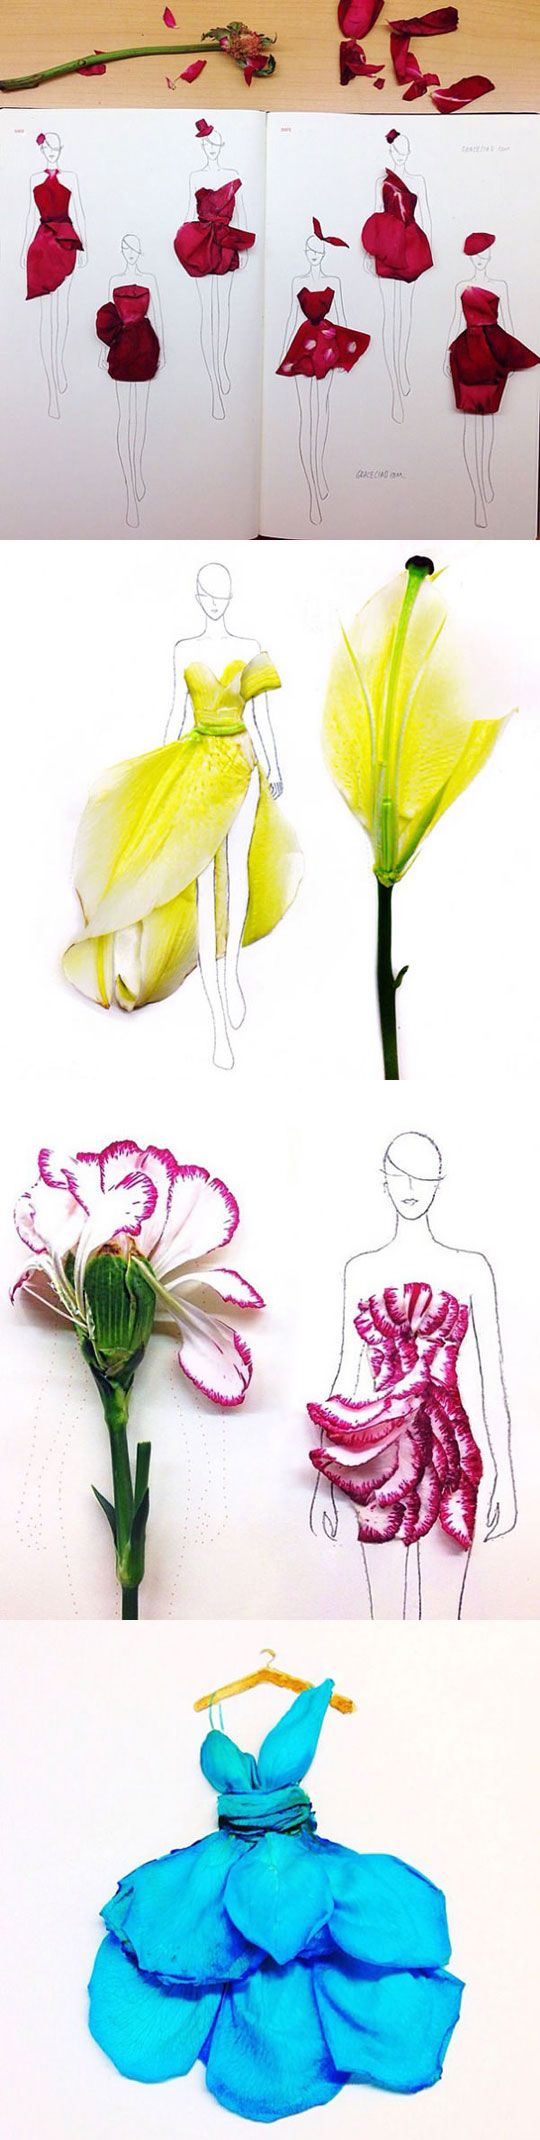 Fashion Illustrations With Real Flower Petals As Clothing - This is actually quite brilliant. Each idea spawns about ten more as you go along....